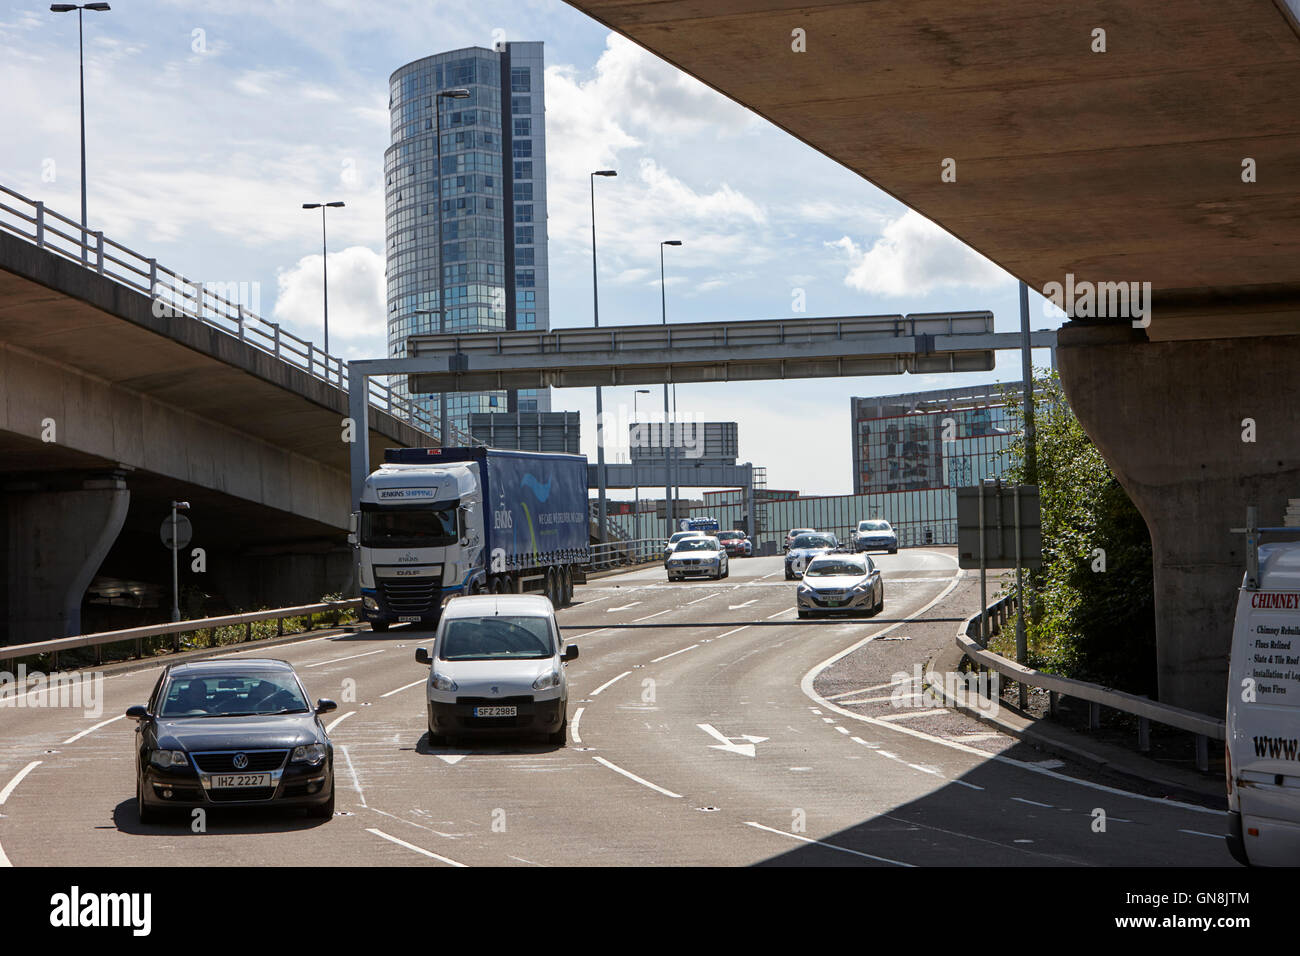 Belfast M3 motorway flyover and underpass traffic in the city centre Northern Ireland UK - Stock Image